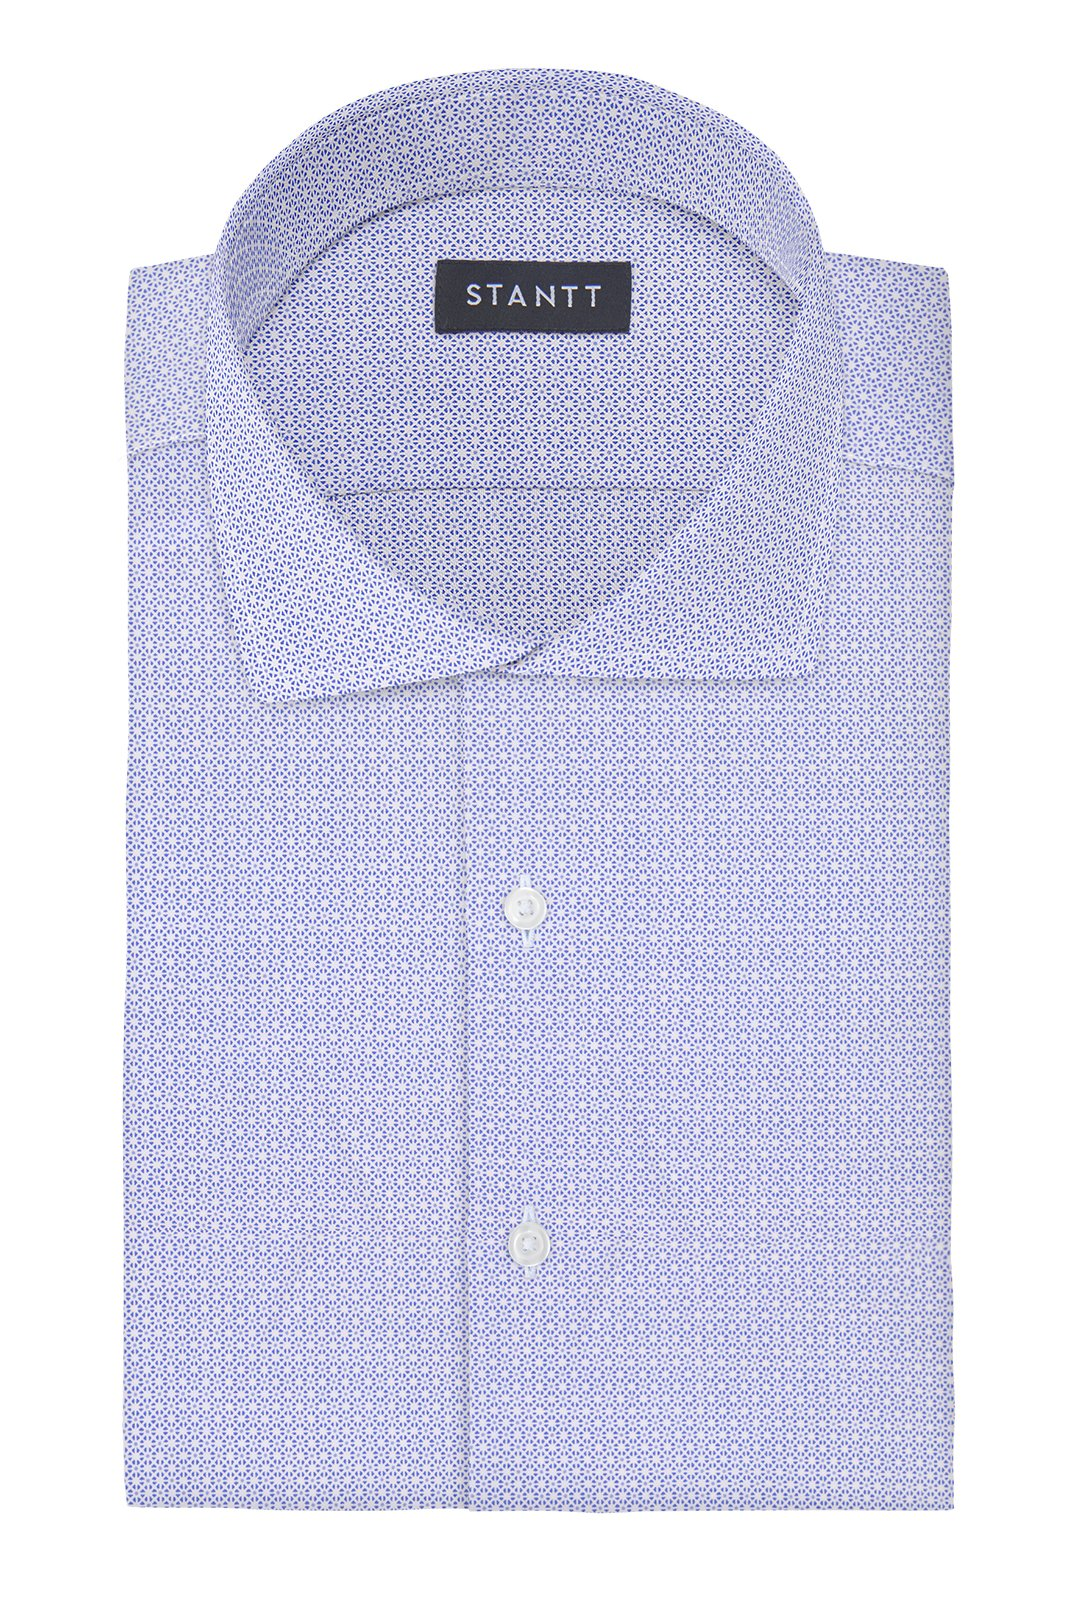 Performance Sky Blue Mosaic Print: Cutaway Collar, Barrel Cuff